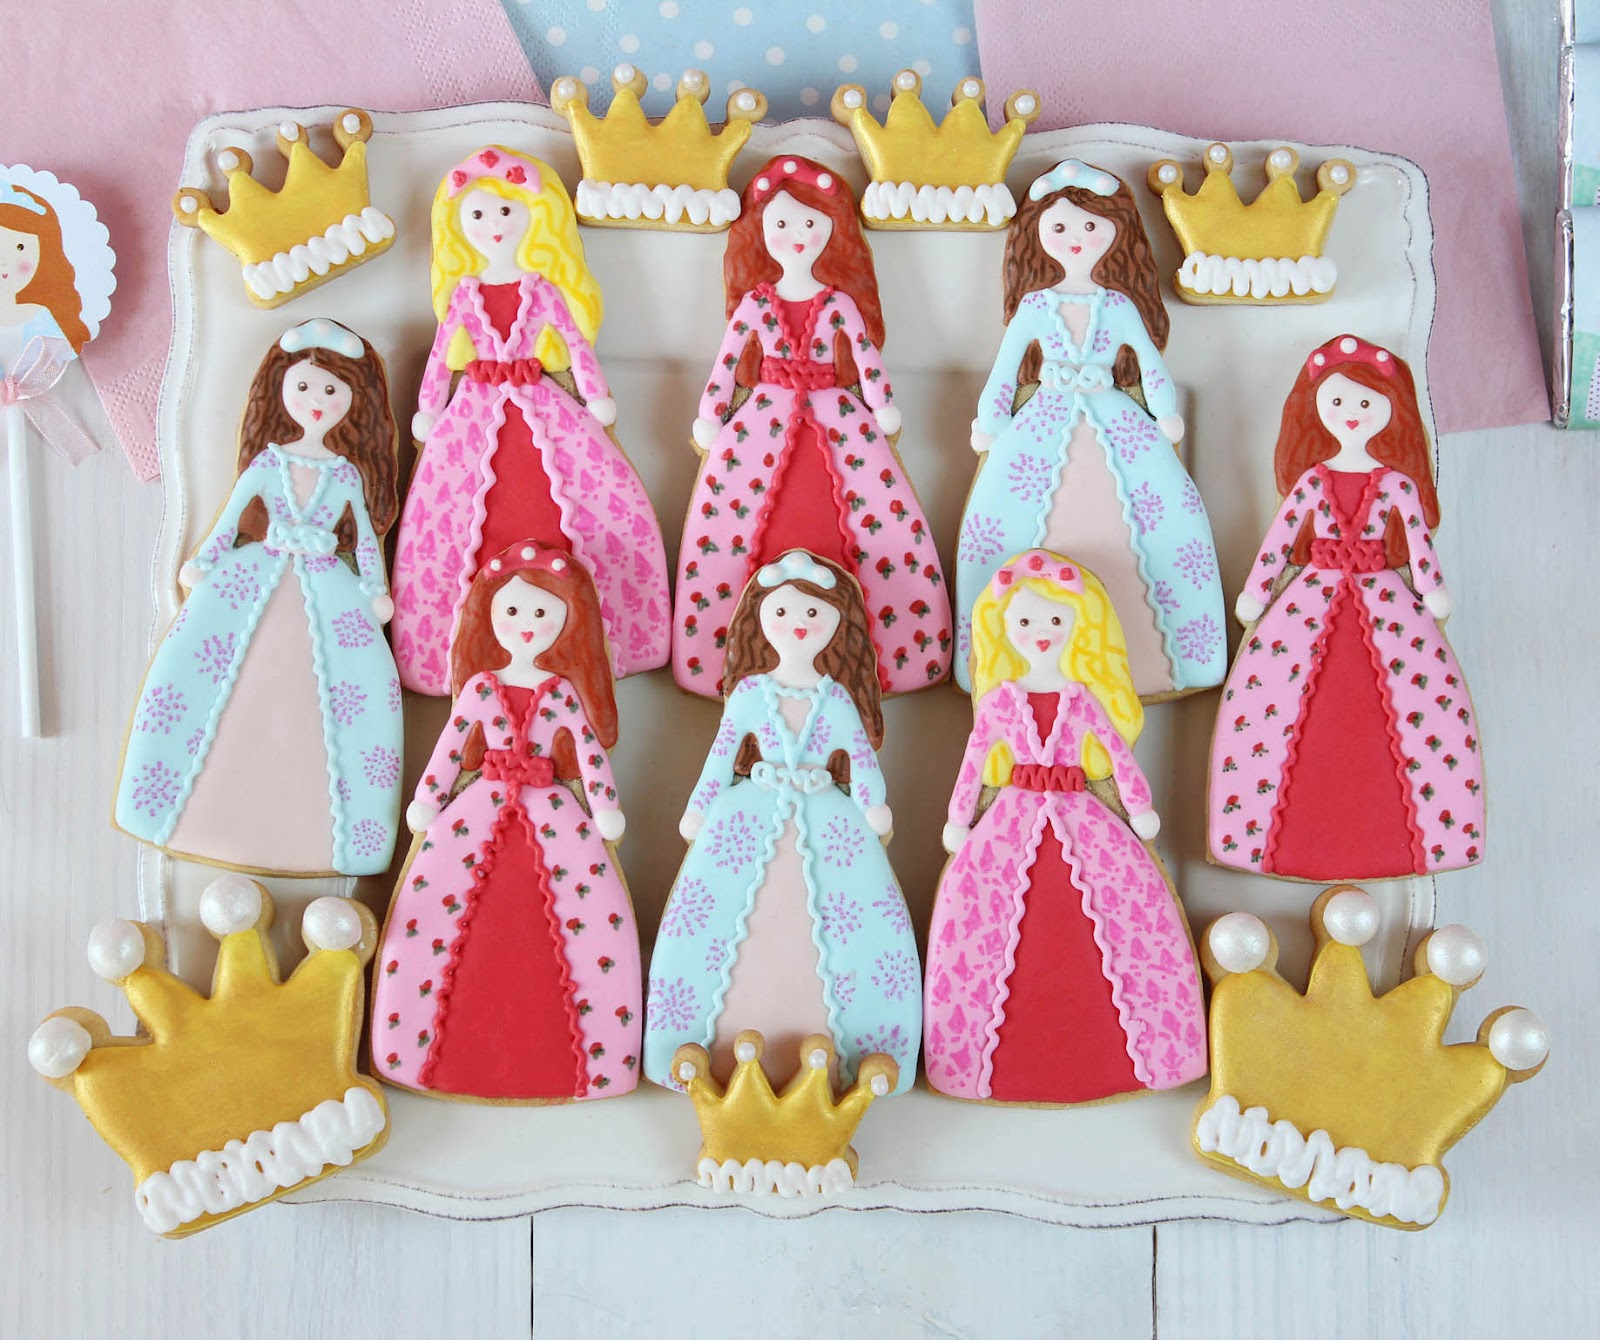 Galletas Decoradas De Princesas Postreadicción Galletas Decoradas Cupcakes Y Cakepops